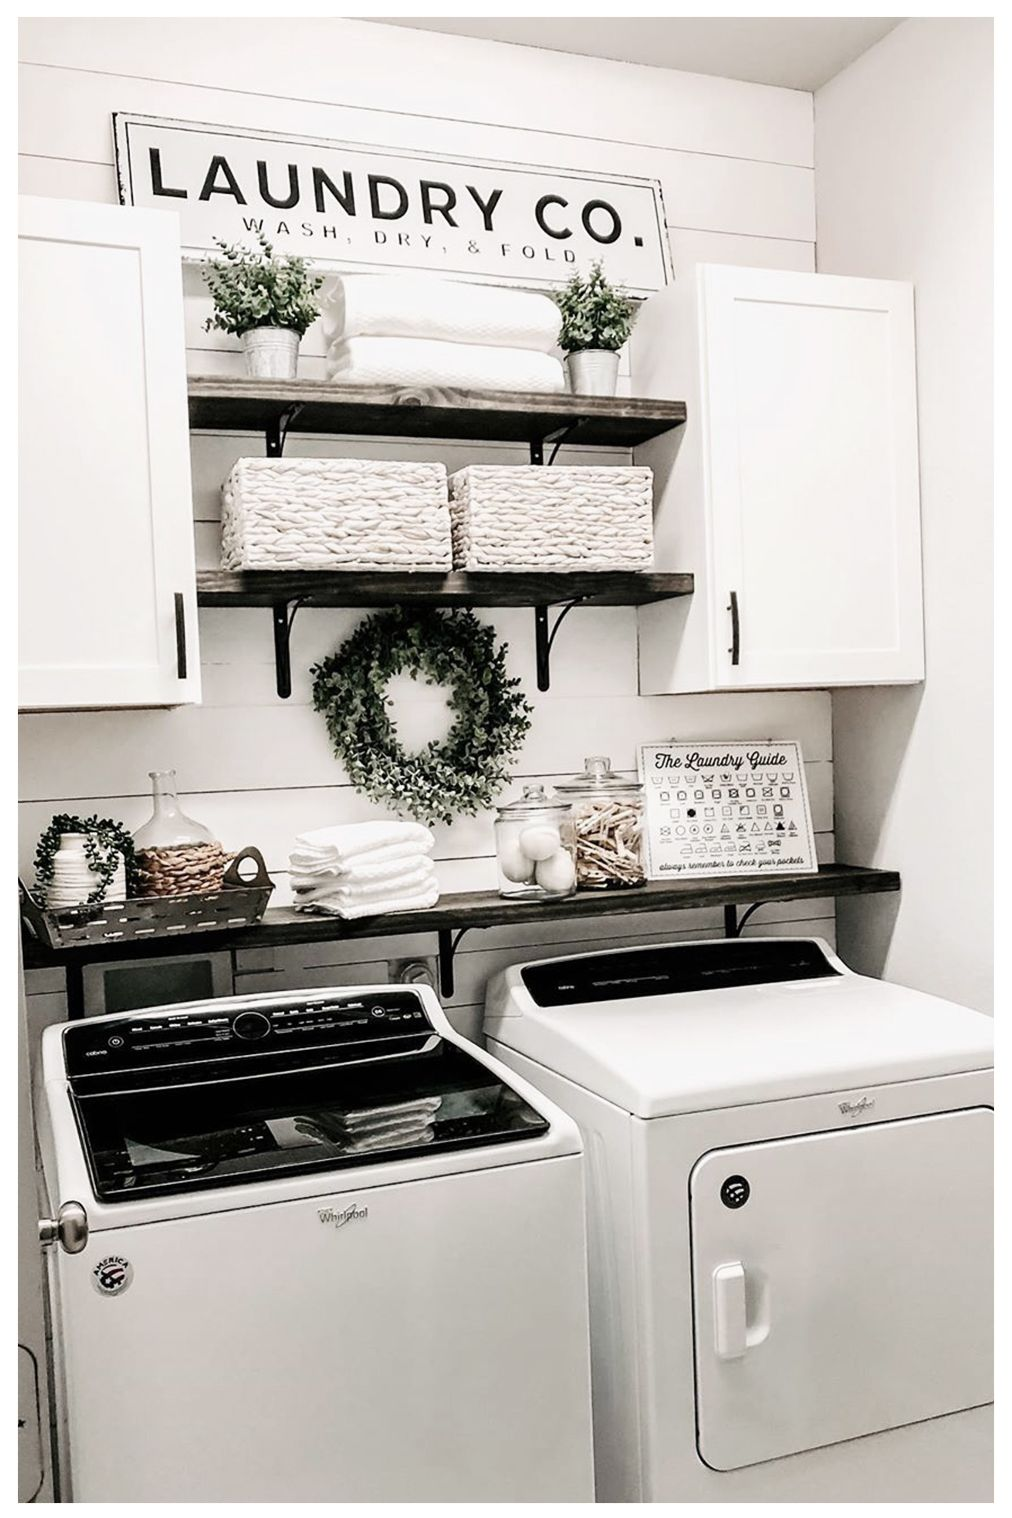 20+ Astonishing Laundry Room Remodel Ideas ( Remodel Tips & Things to Consider)